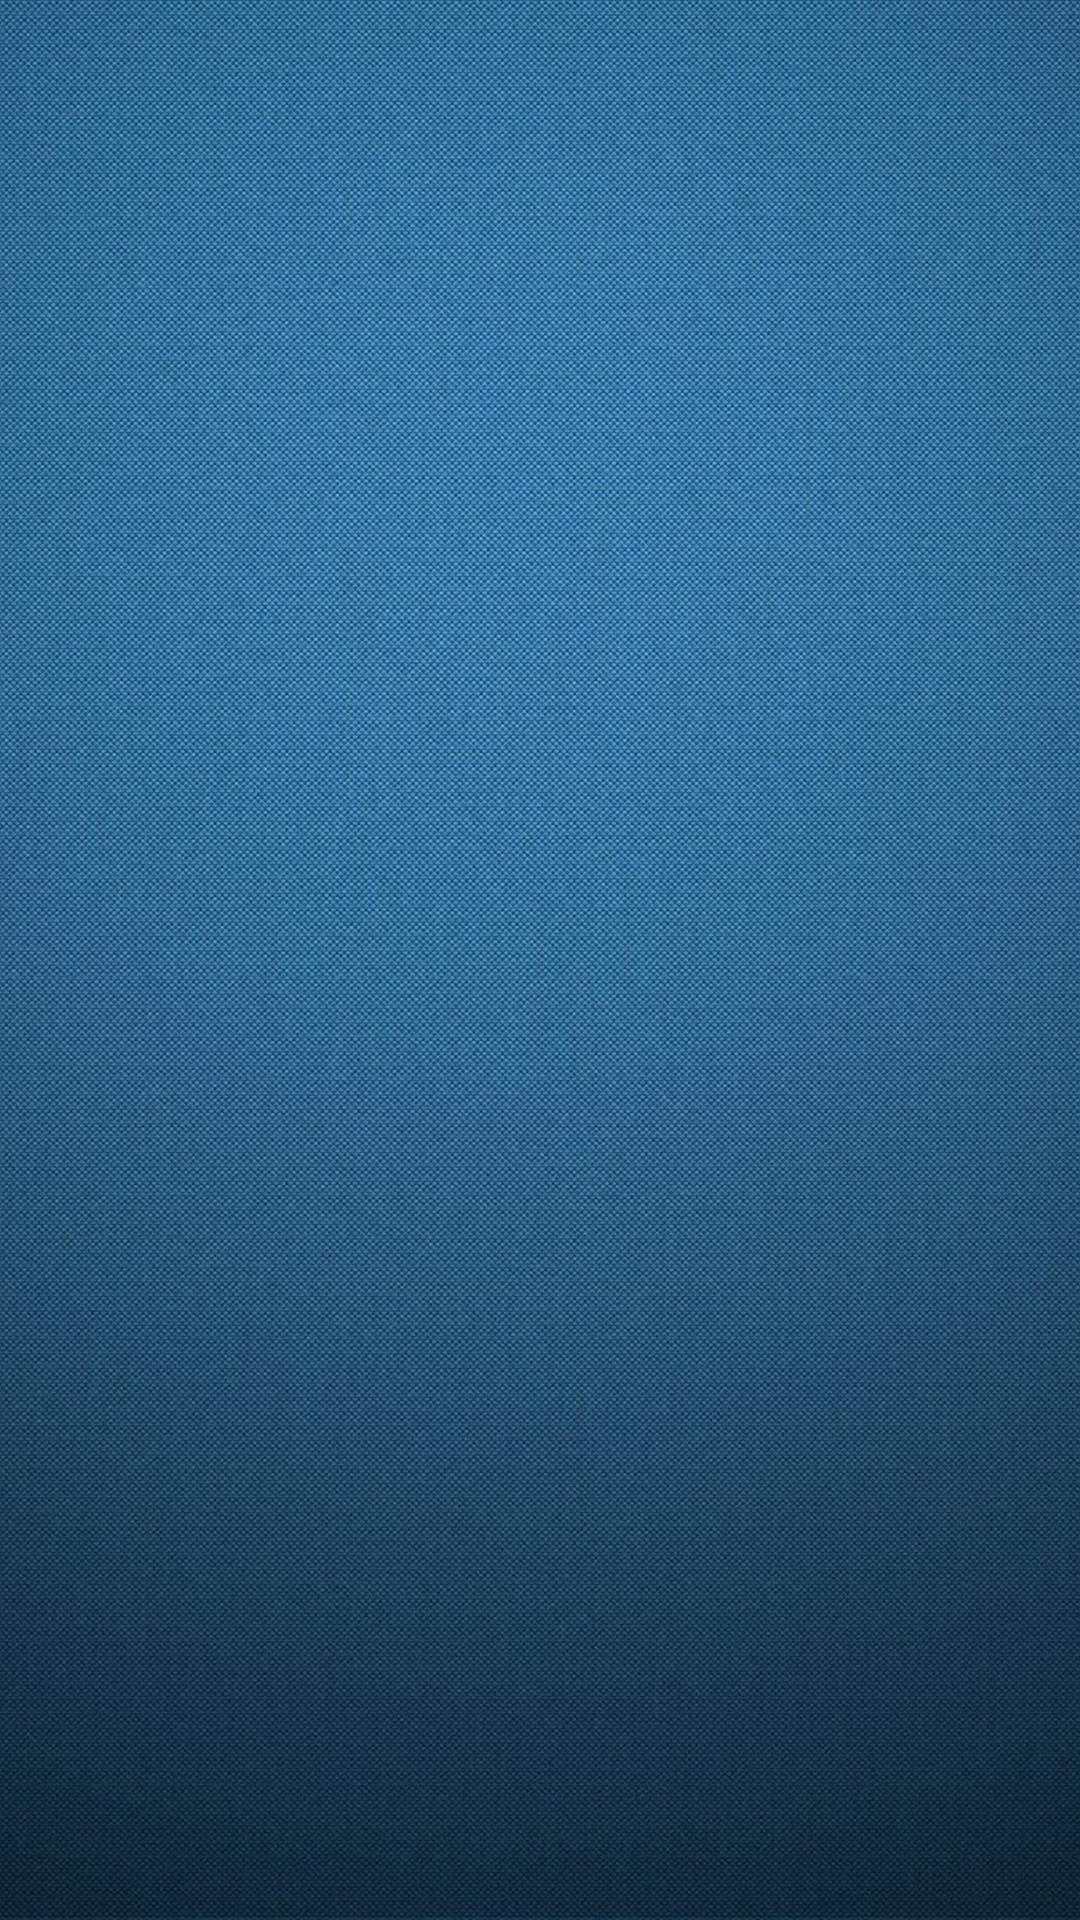 Solid Color Wallpaper For Iphone 64 Images